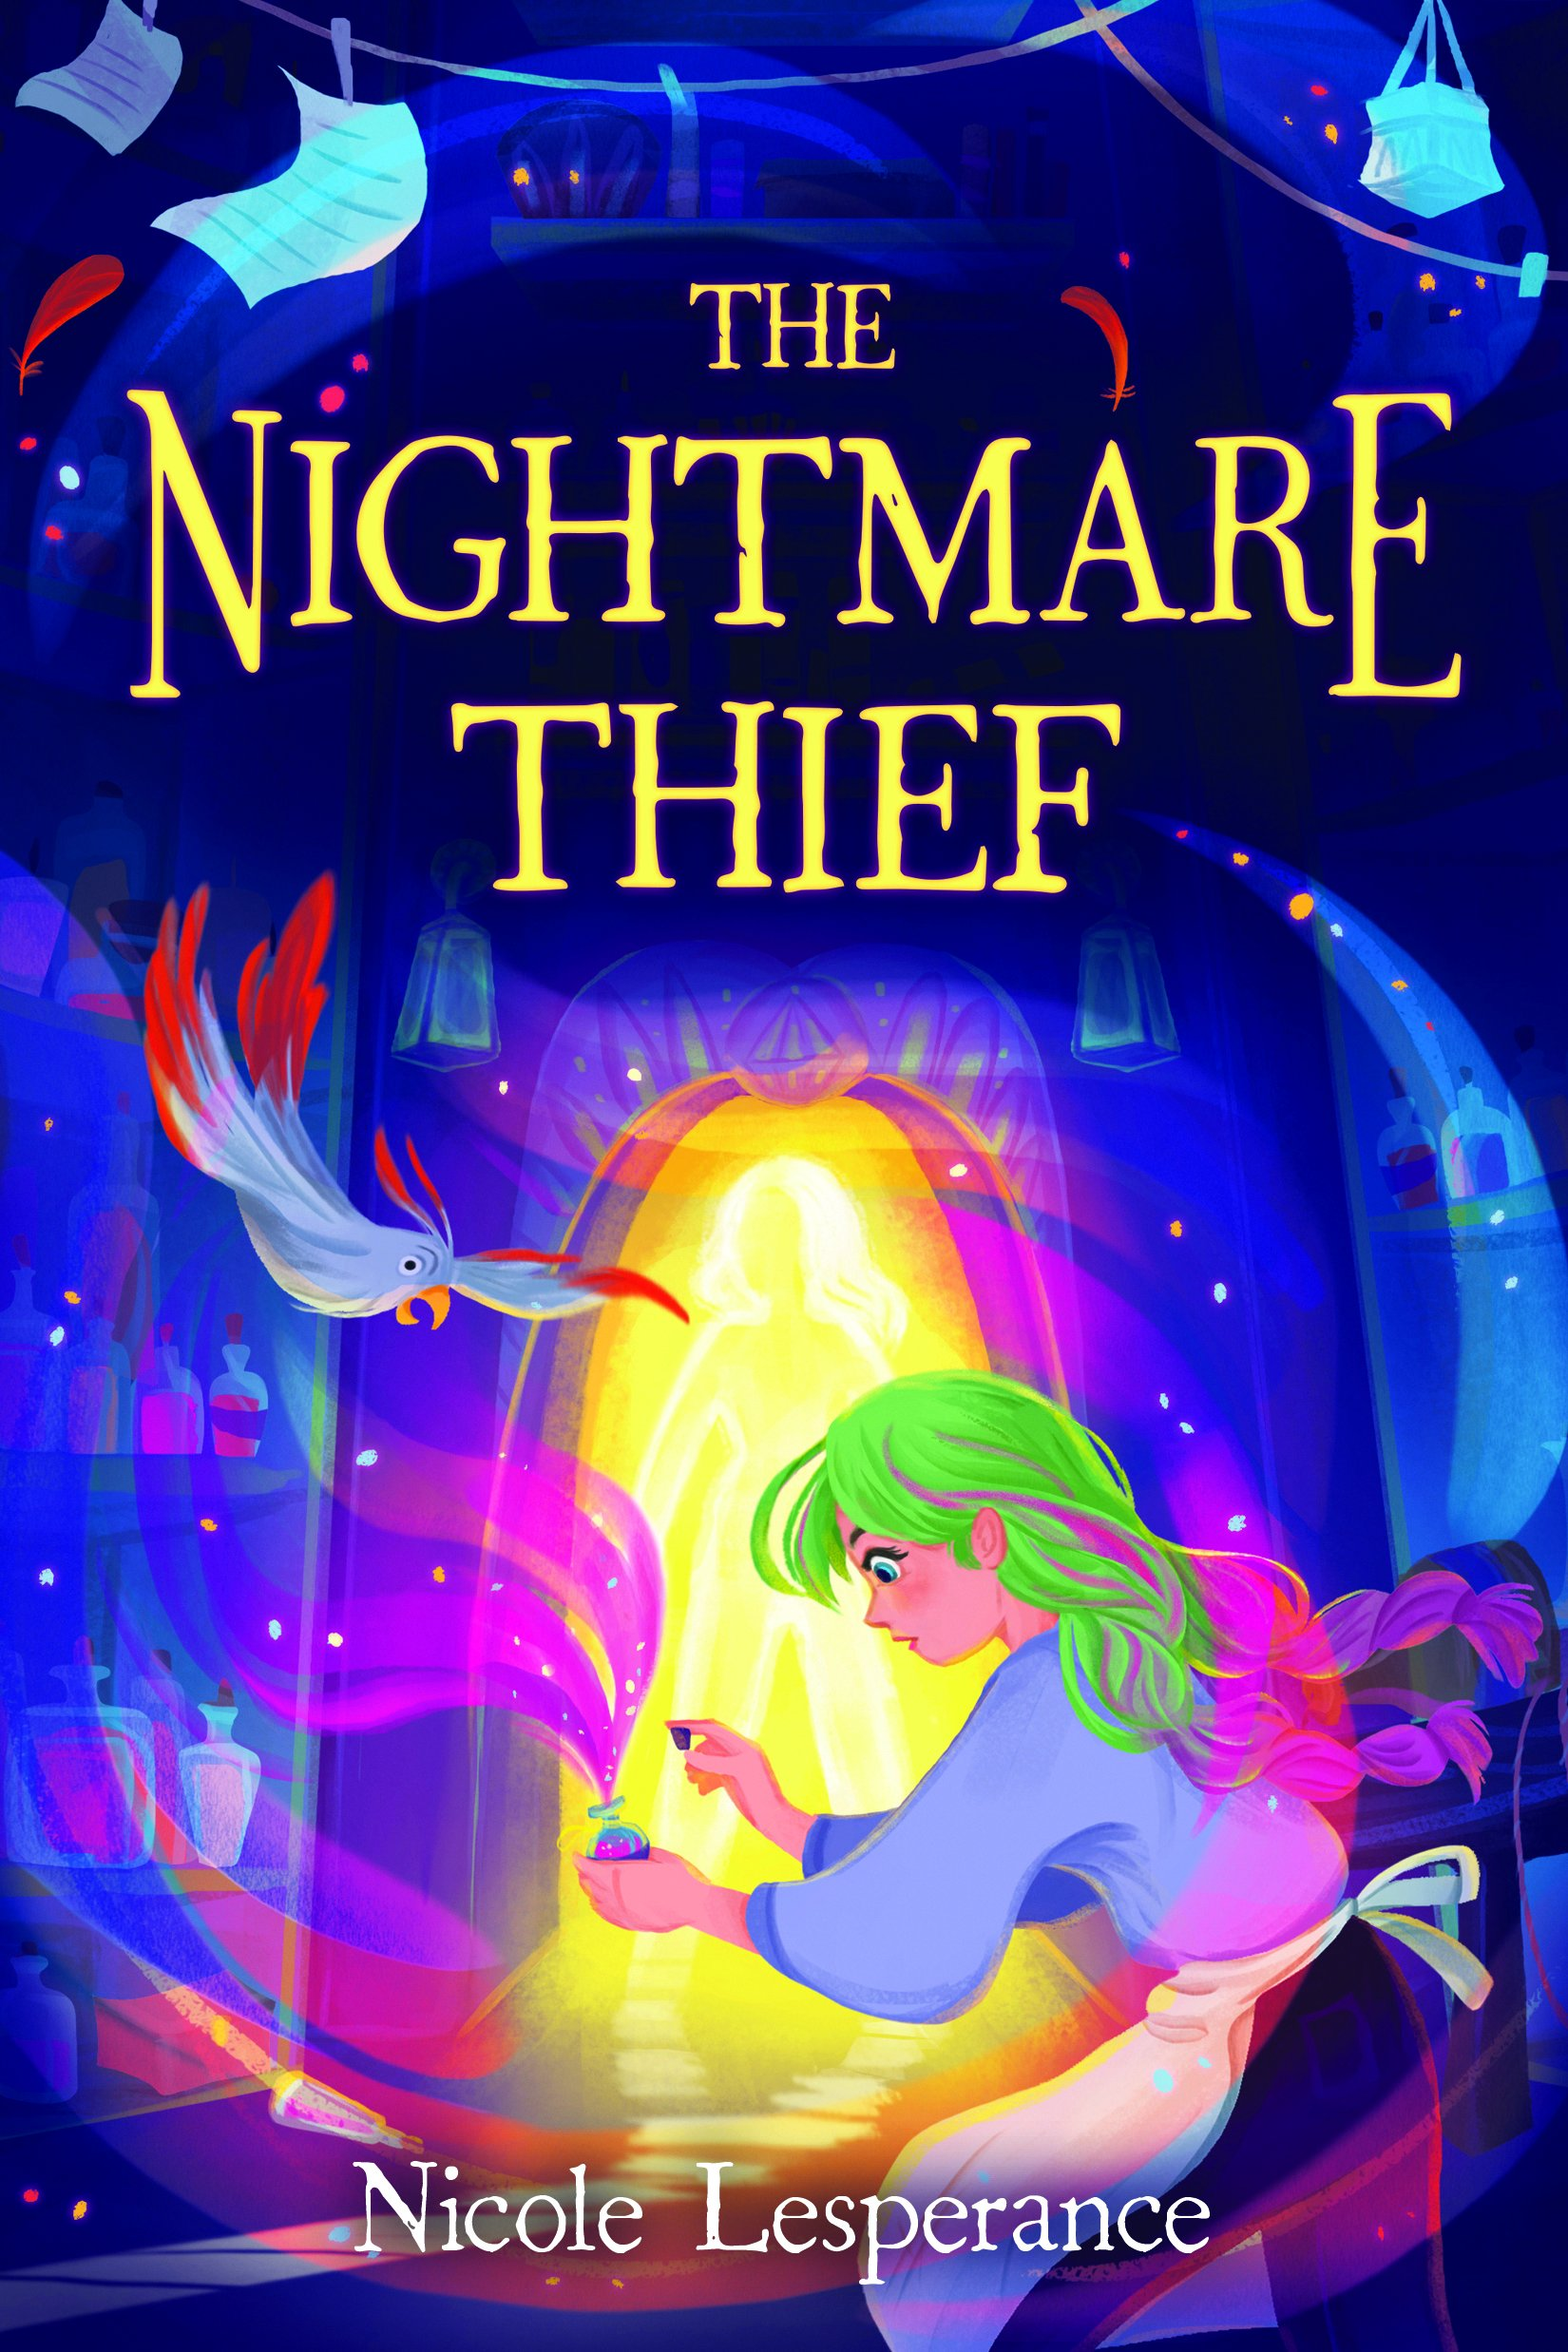 The Nightmare Thief by Nicole Lesperance, Federica Fenna